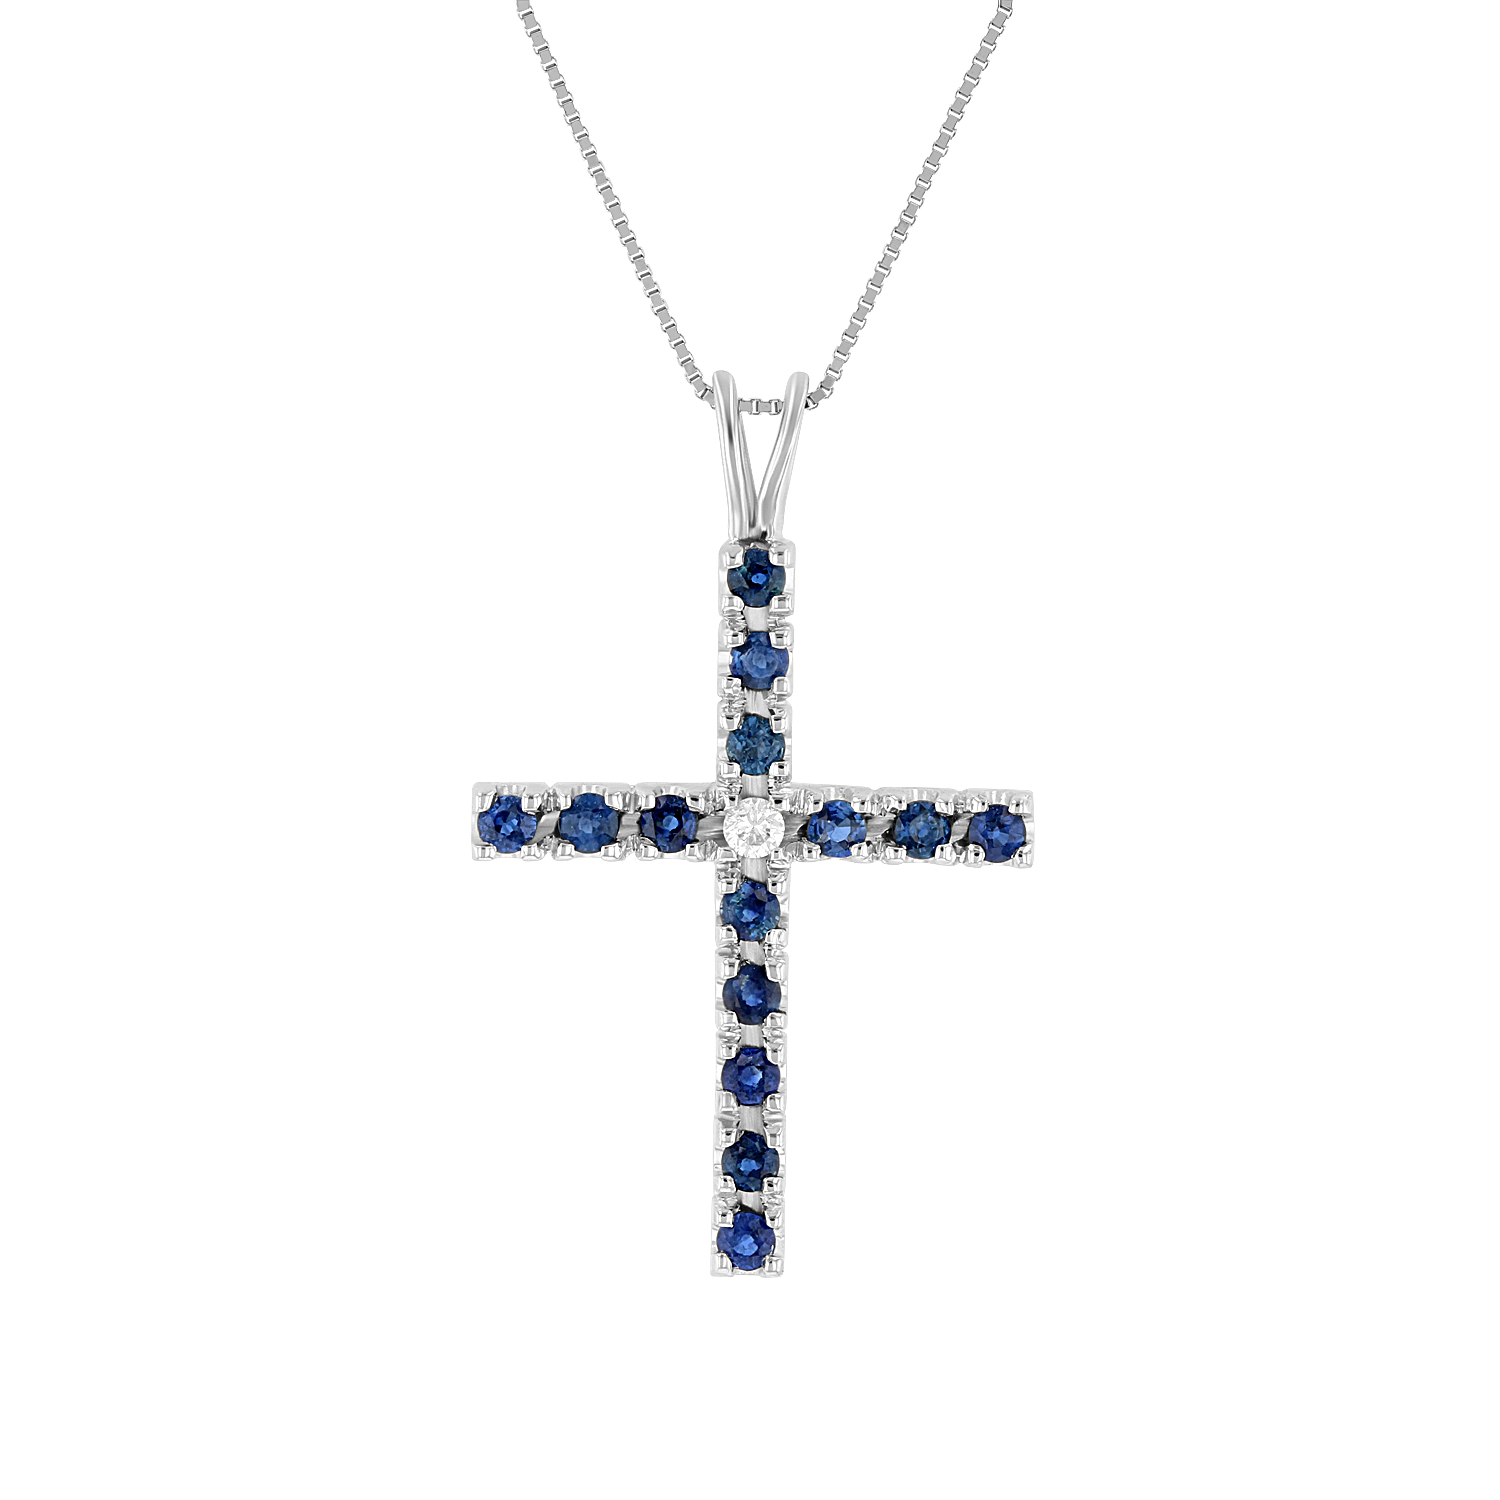 View 0.74ctw Diamond and Sapphire Cross Pendant in 14k White Gold